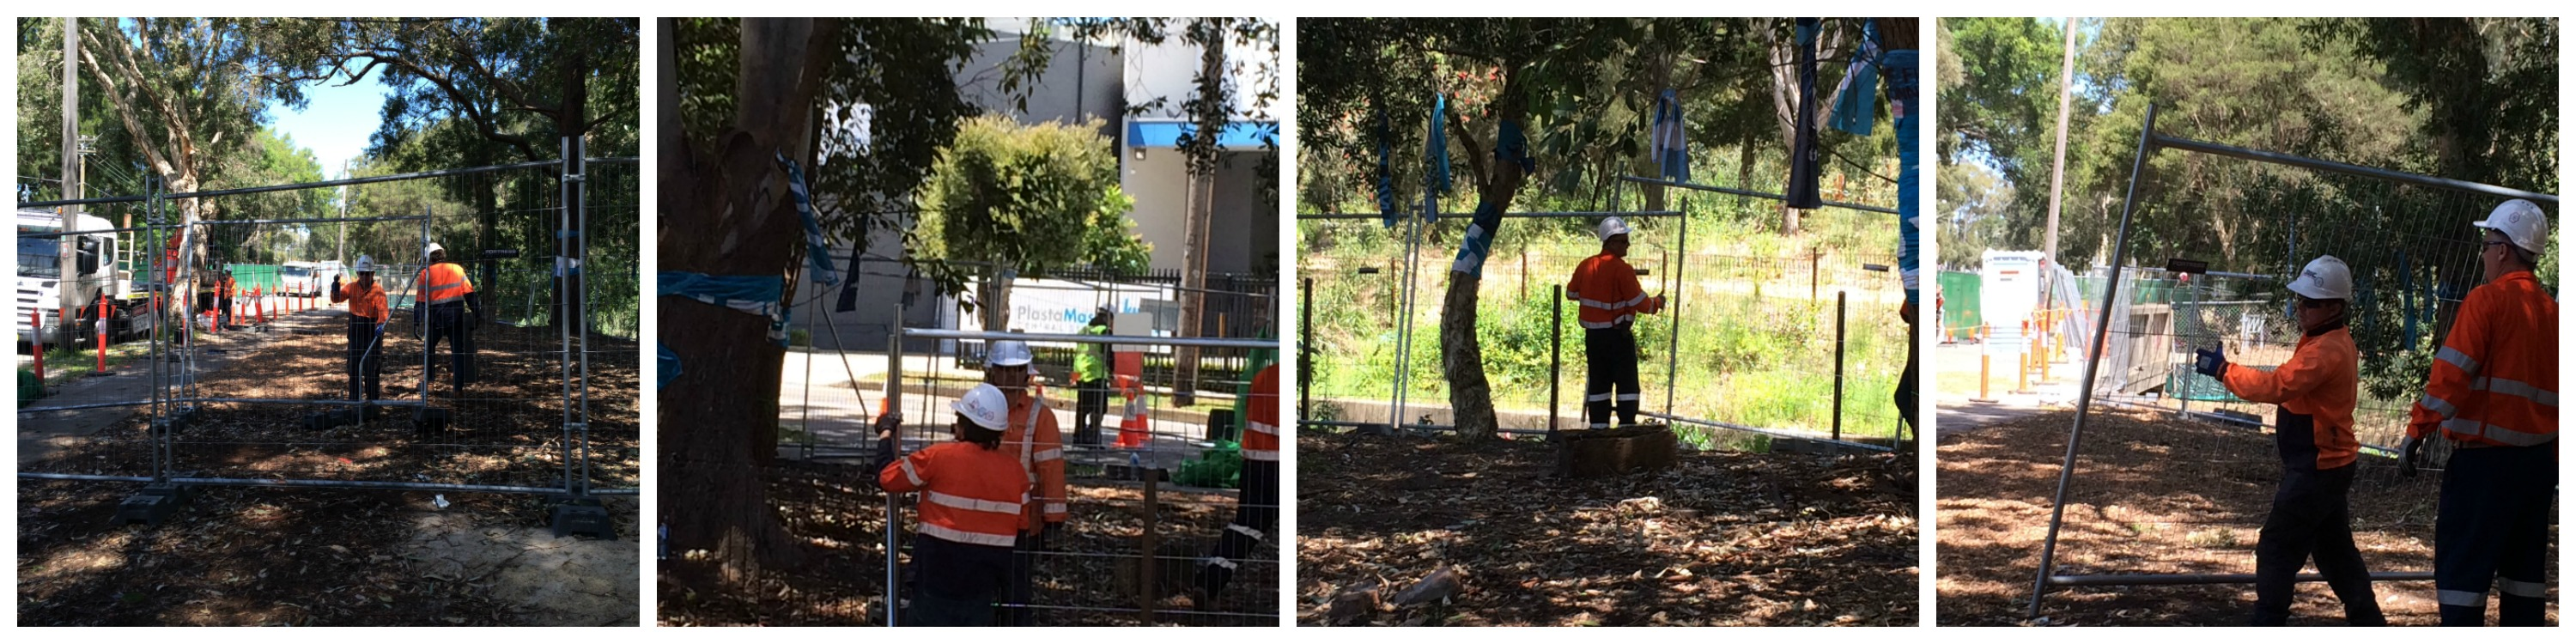 WestCONnex workers pack up Sydney Park compound